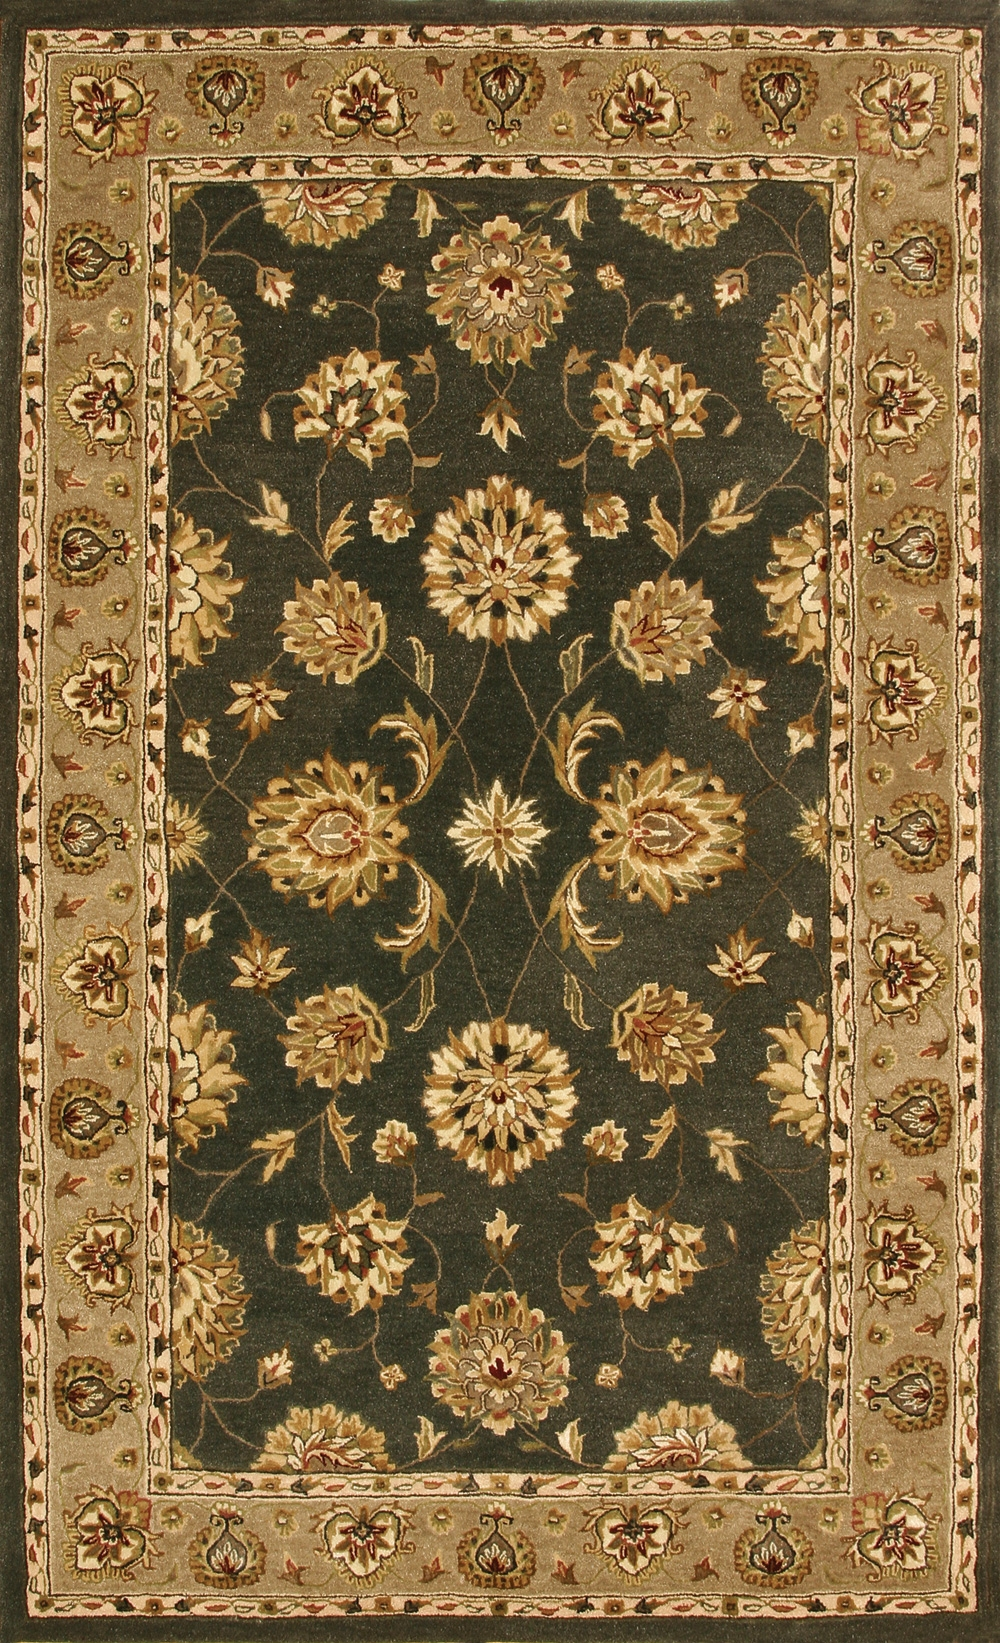 Green Dark Linen 70230 444 Jewel Rug By Dynamic